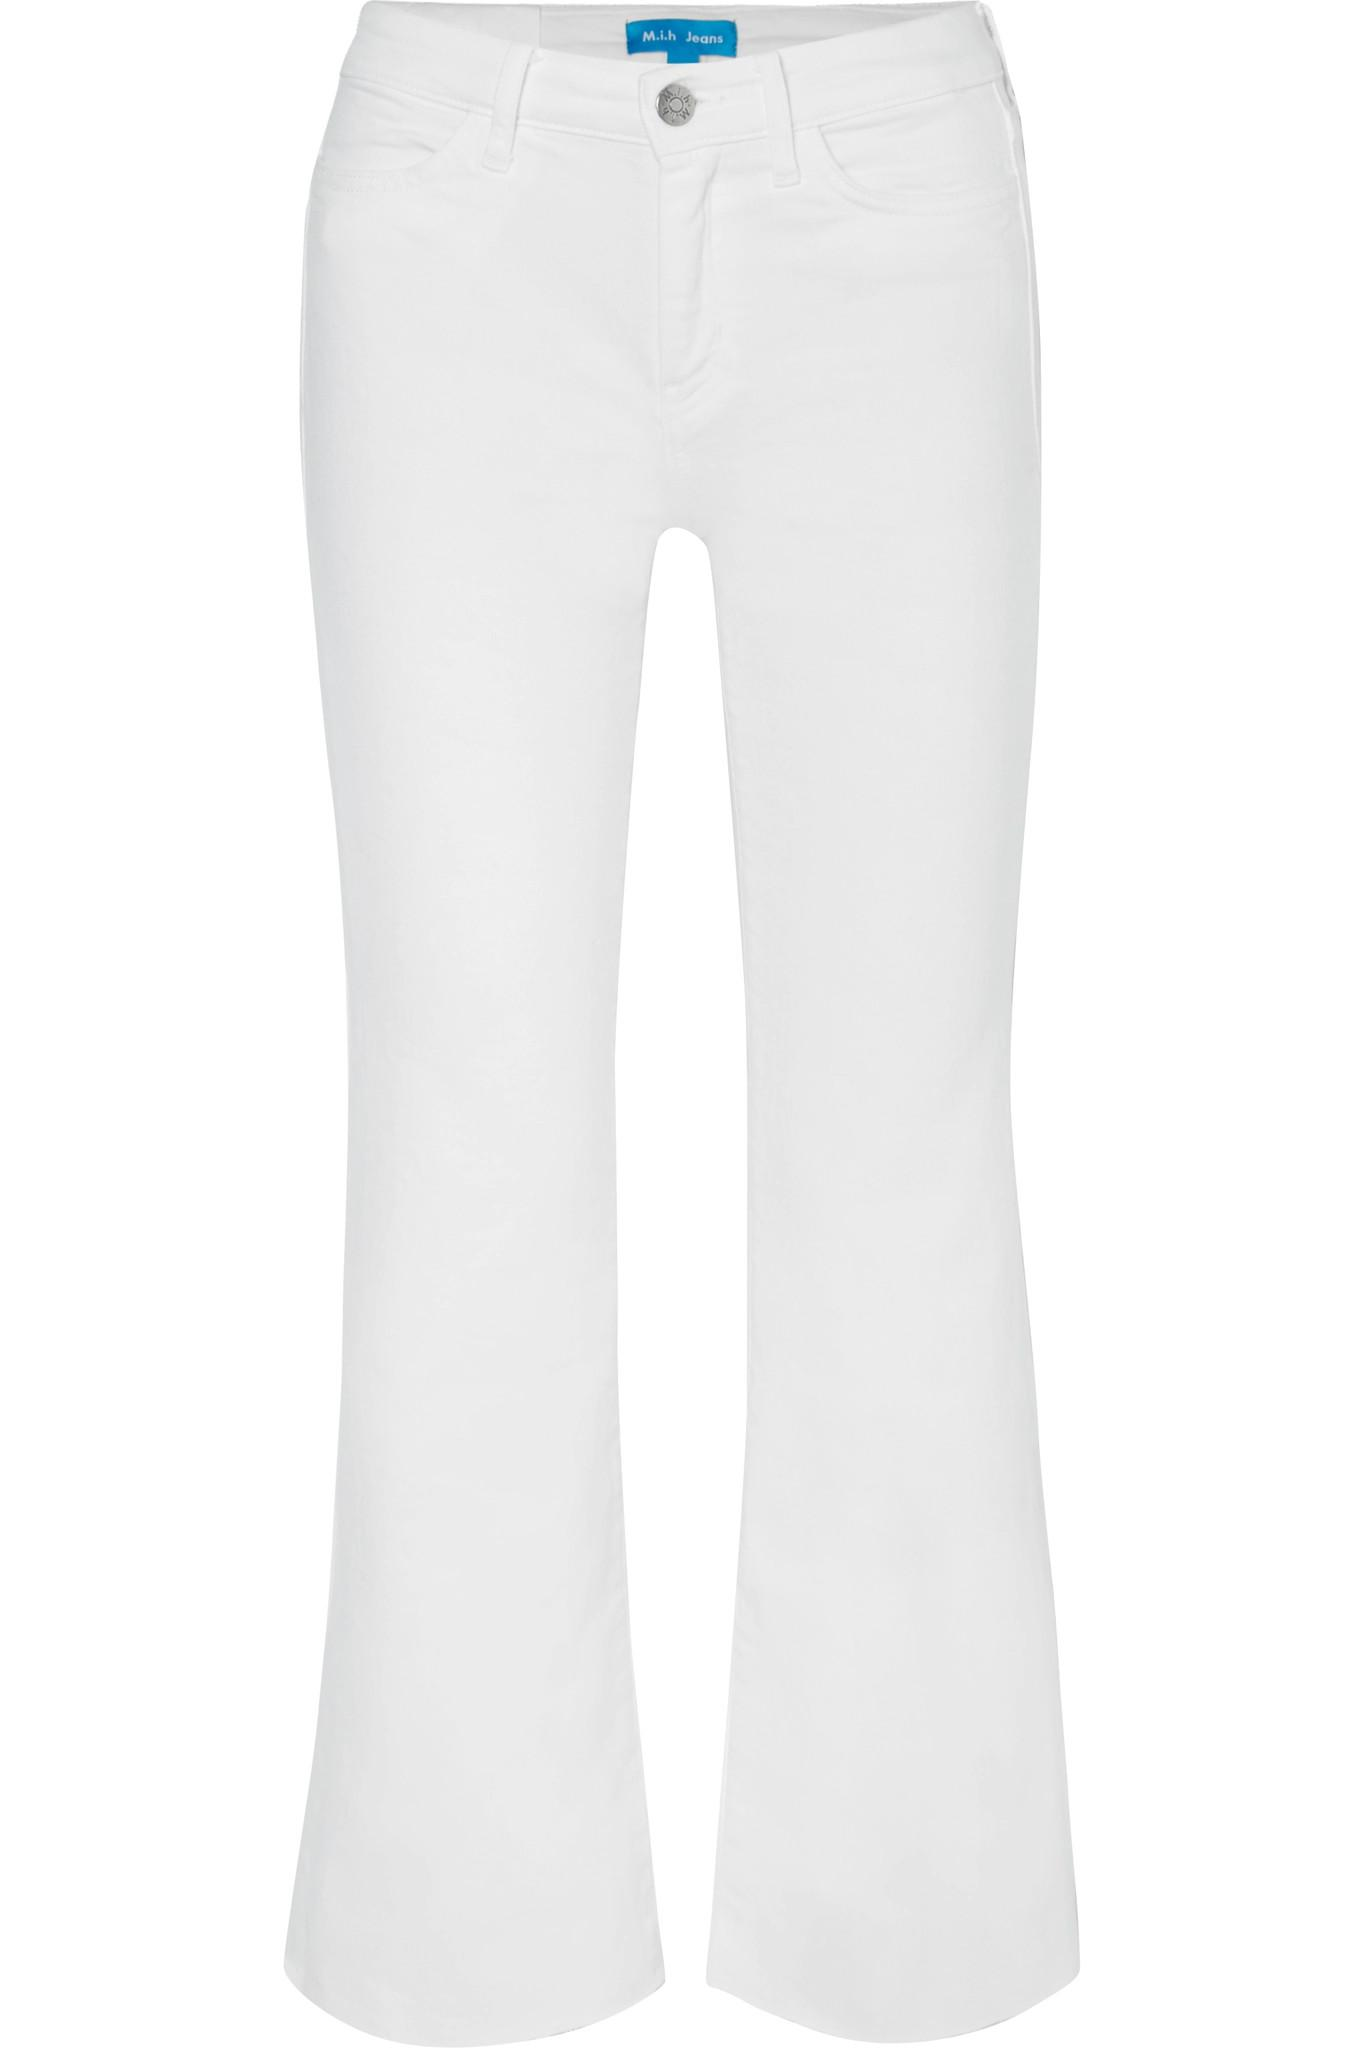 Lou Frayed Cropped High-rise Flared Jeans - White Mih Jeans Q7oONT